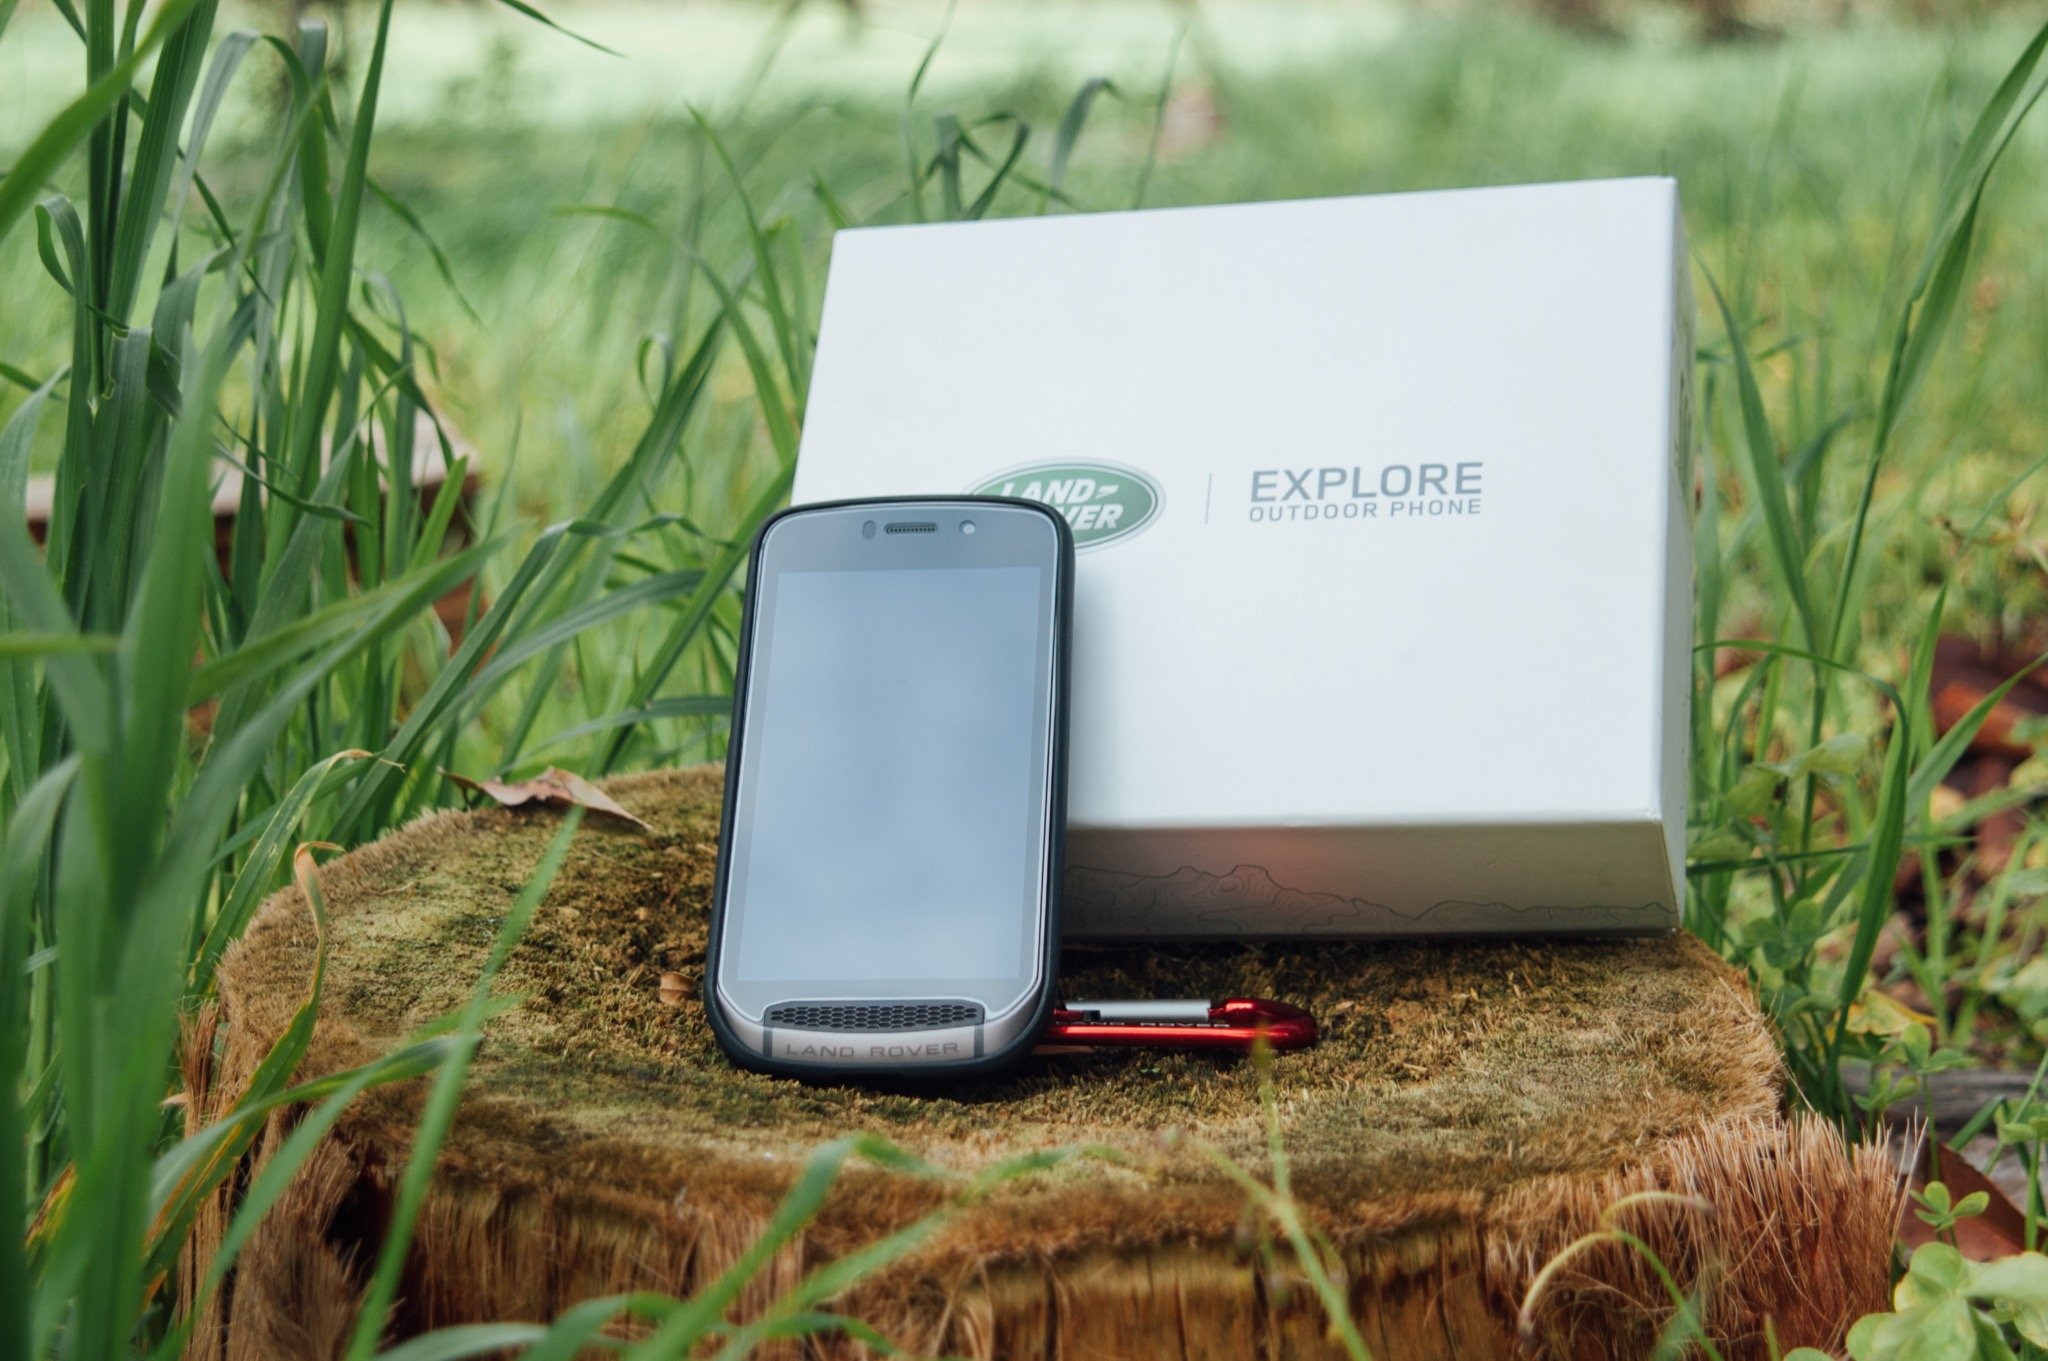 Win the new Land Rover Explore Outdoor Phone!